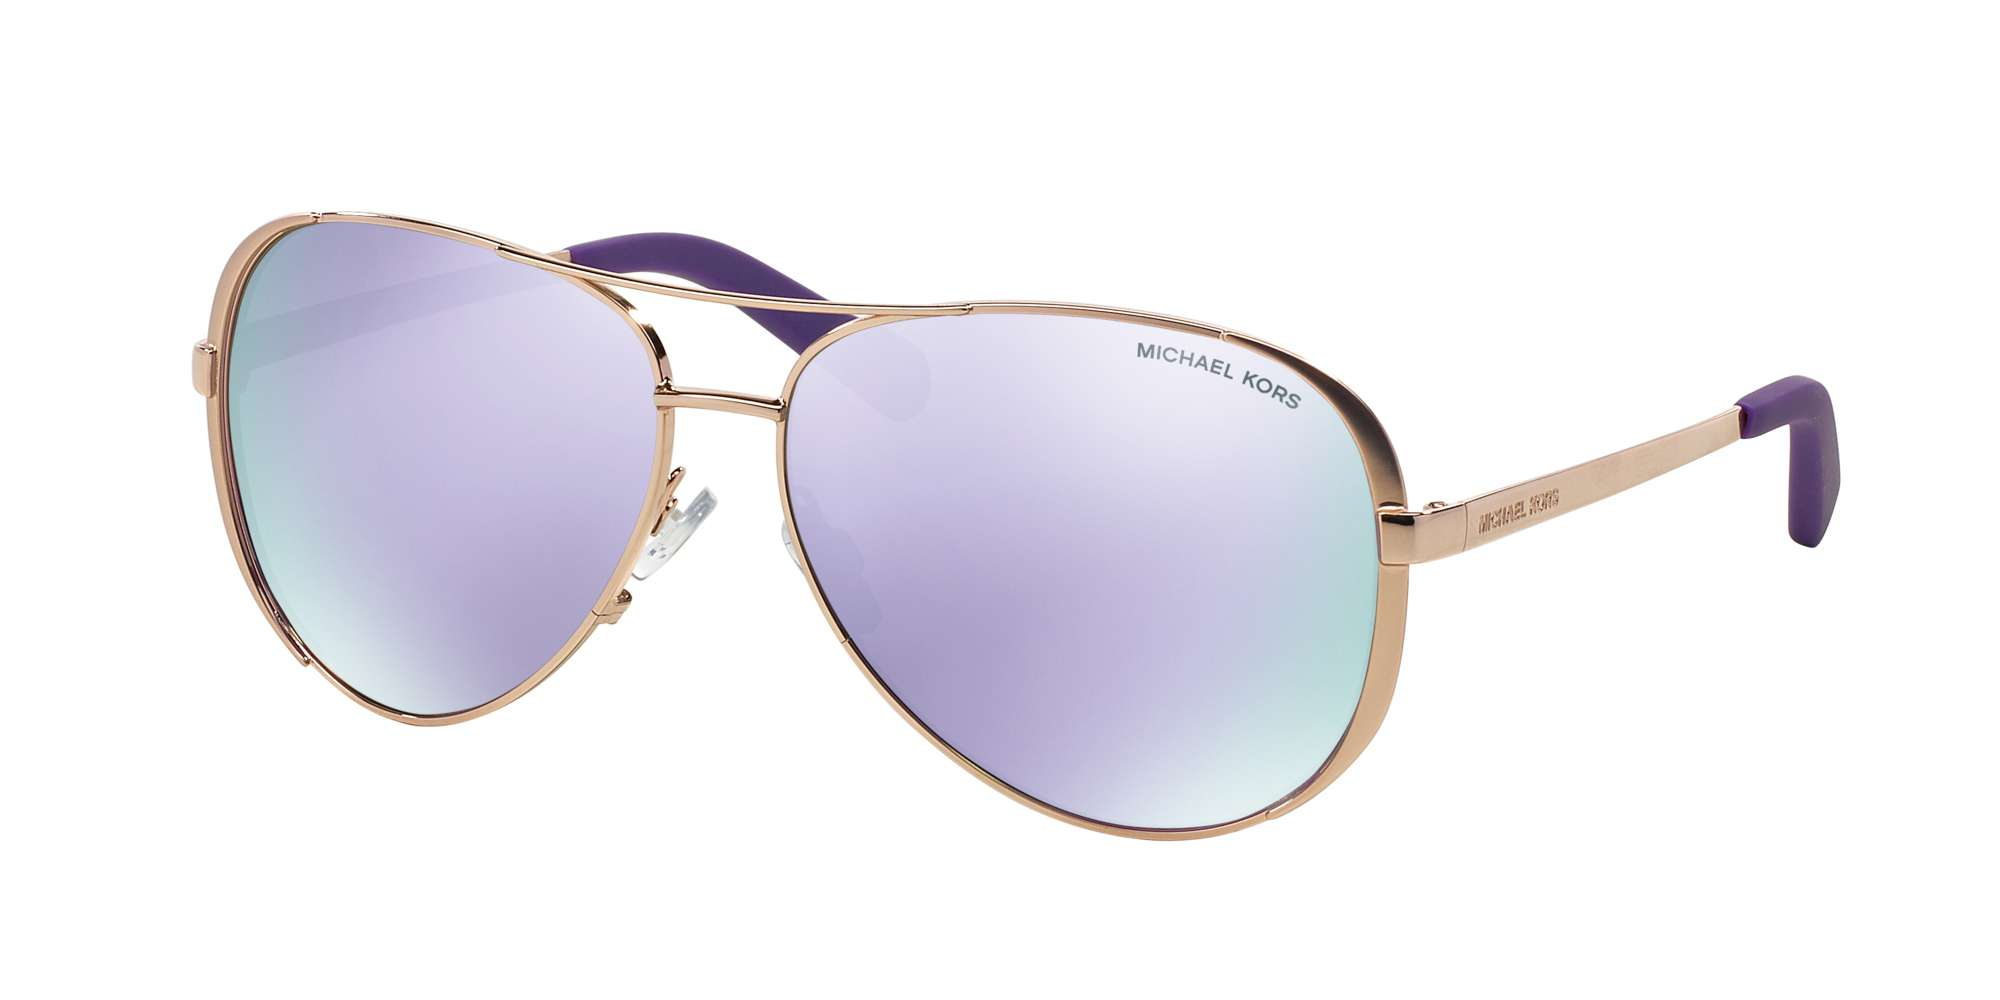 ROSE GOLD-TONE / PURPLE MIRROR lenses